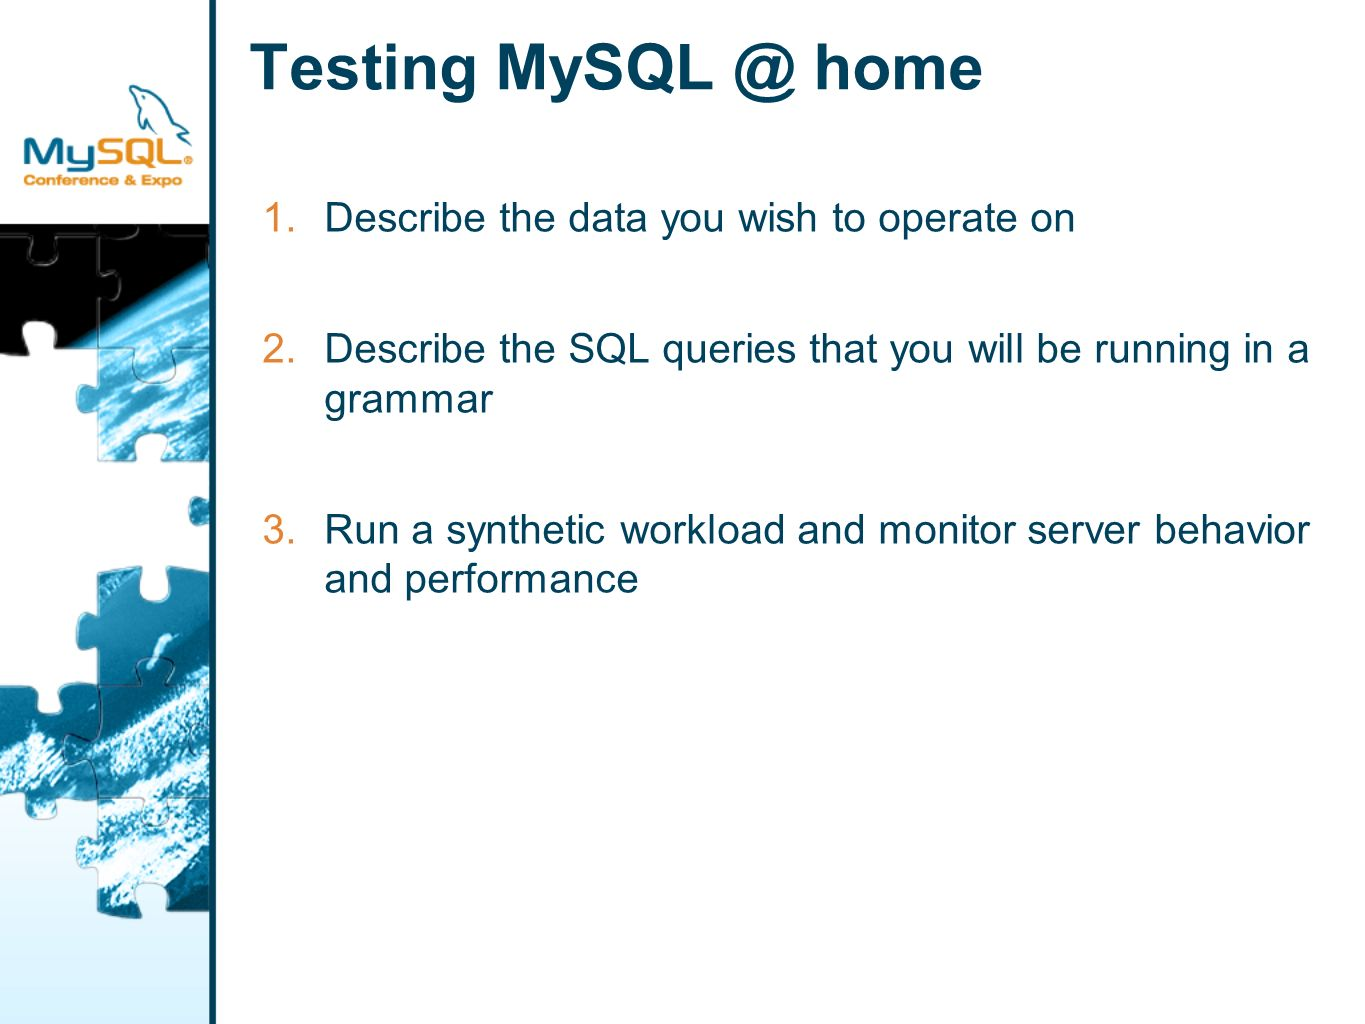 Testing MySQL @ home 1.Describe the data you wish to operate on 2.Describe the SQL queries that you will be running in a grammar 3.Run a synthetic workload and monitor server behavior and performance